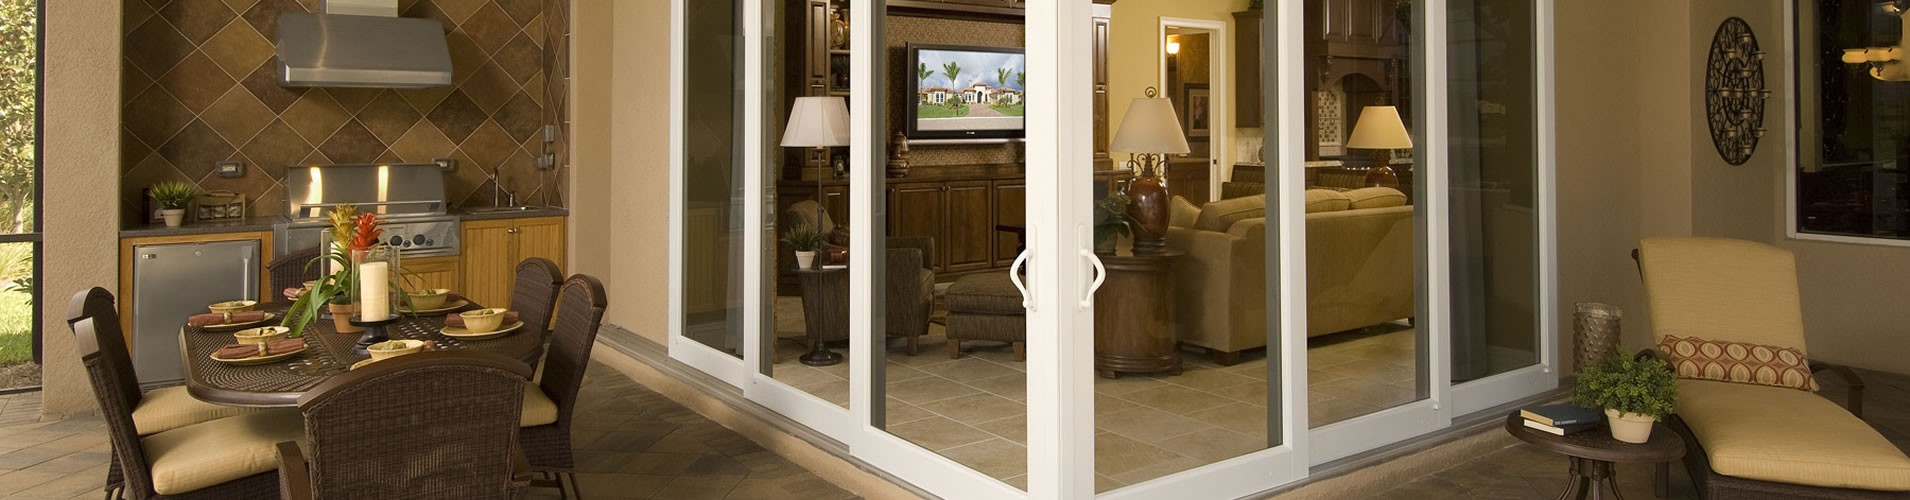 Sliding Impact Windows, Port St. Lucie